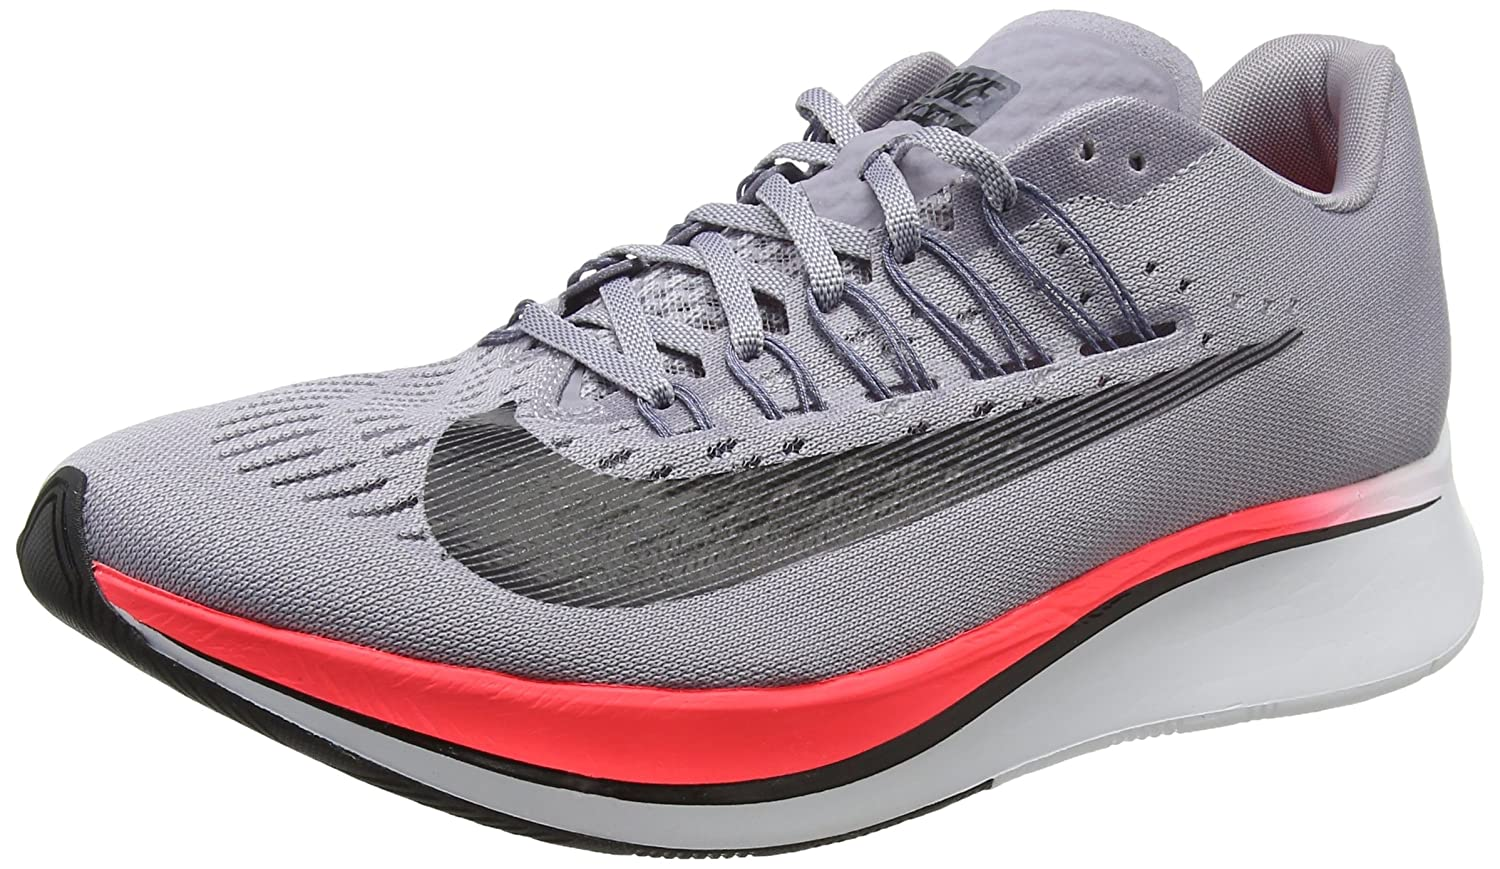 Grey (Provence Purple Light Carbon Solar Red Black 516) 0 M US Nike Women's WMNS Zoom Fly Trainers